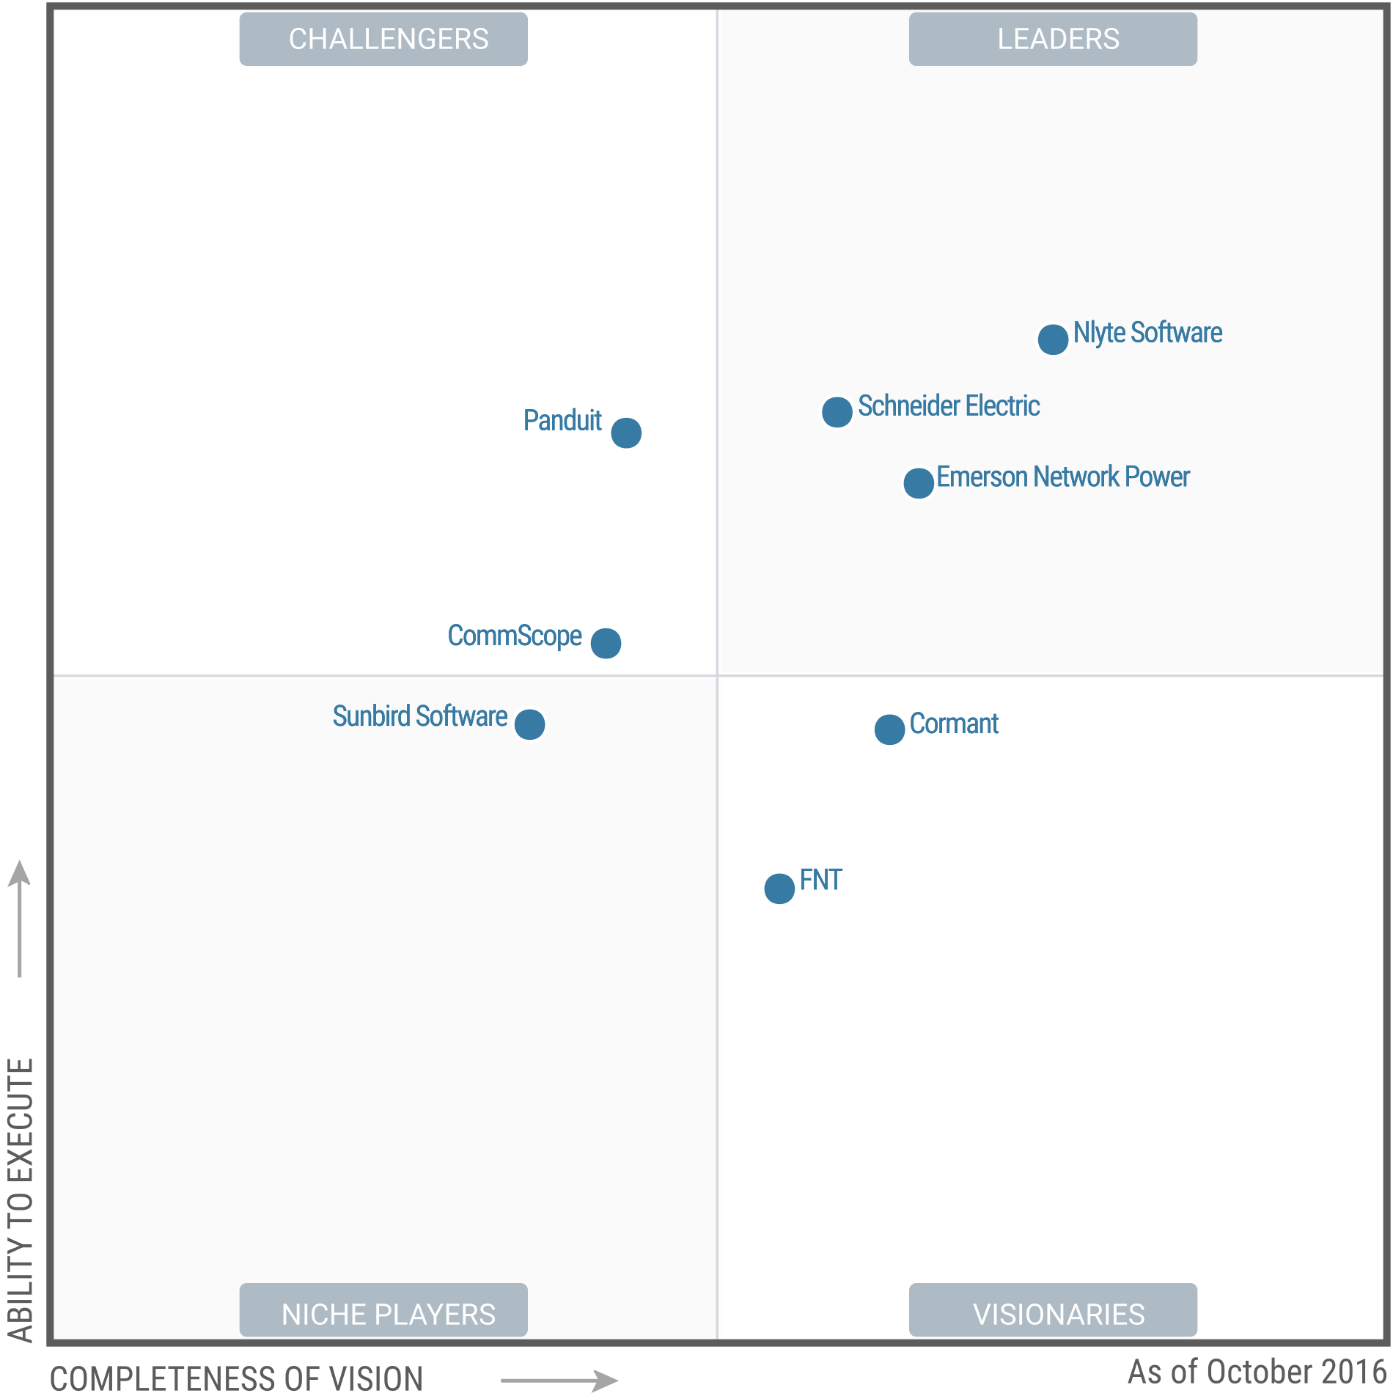 gartner dcim magic Quadrant 2016